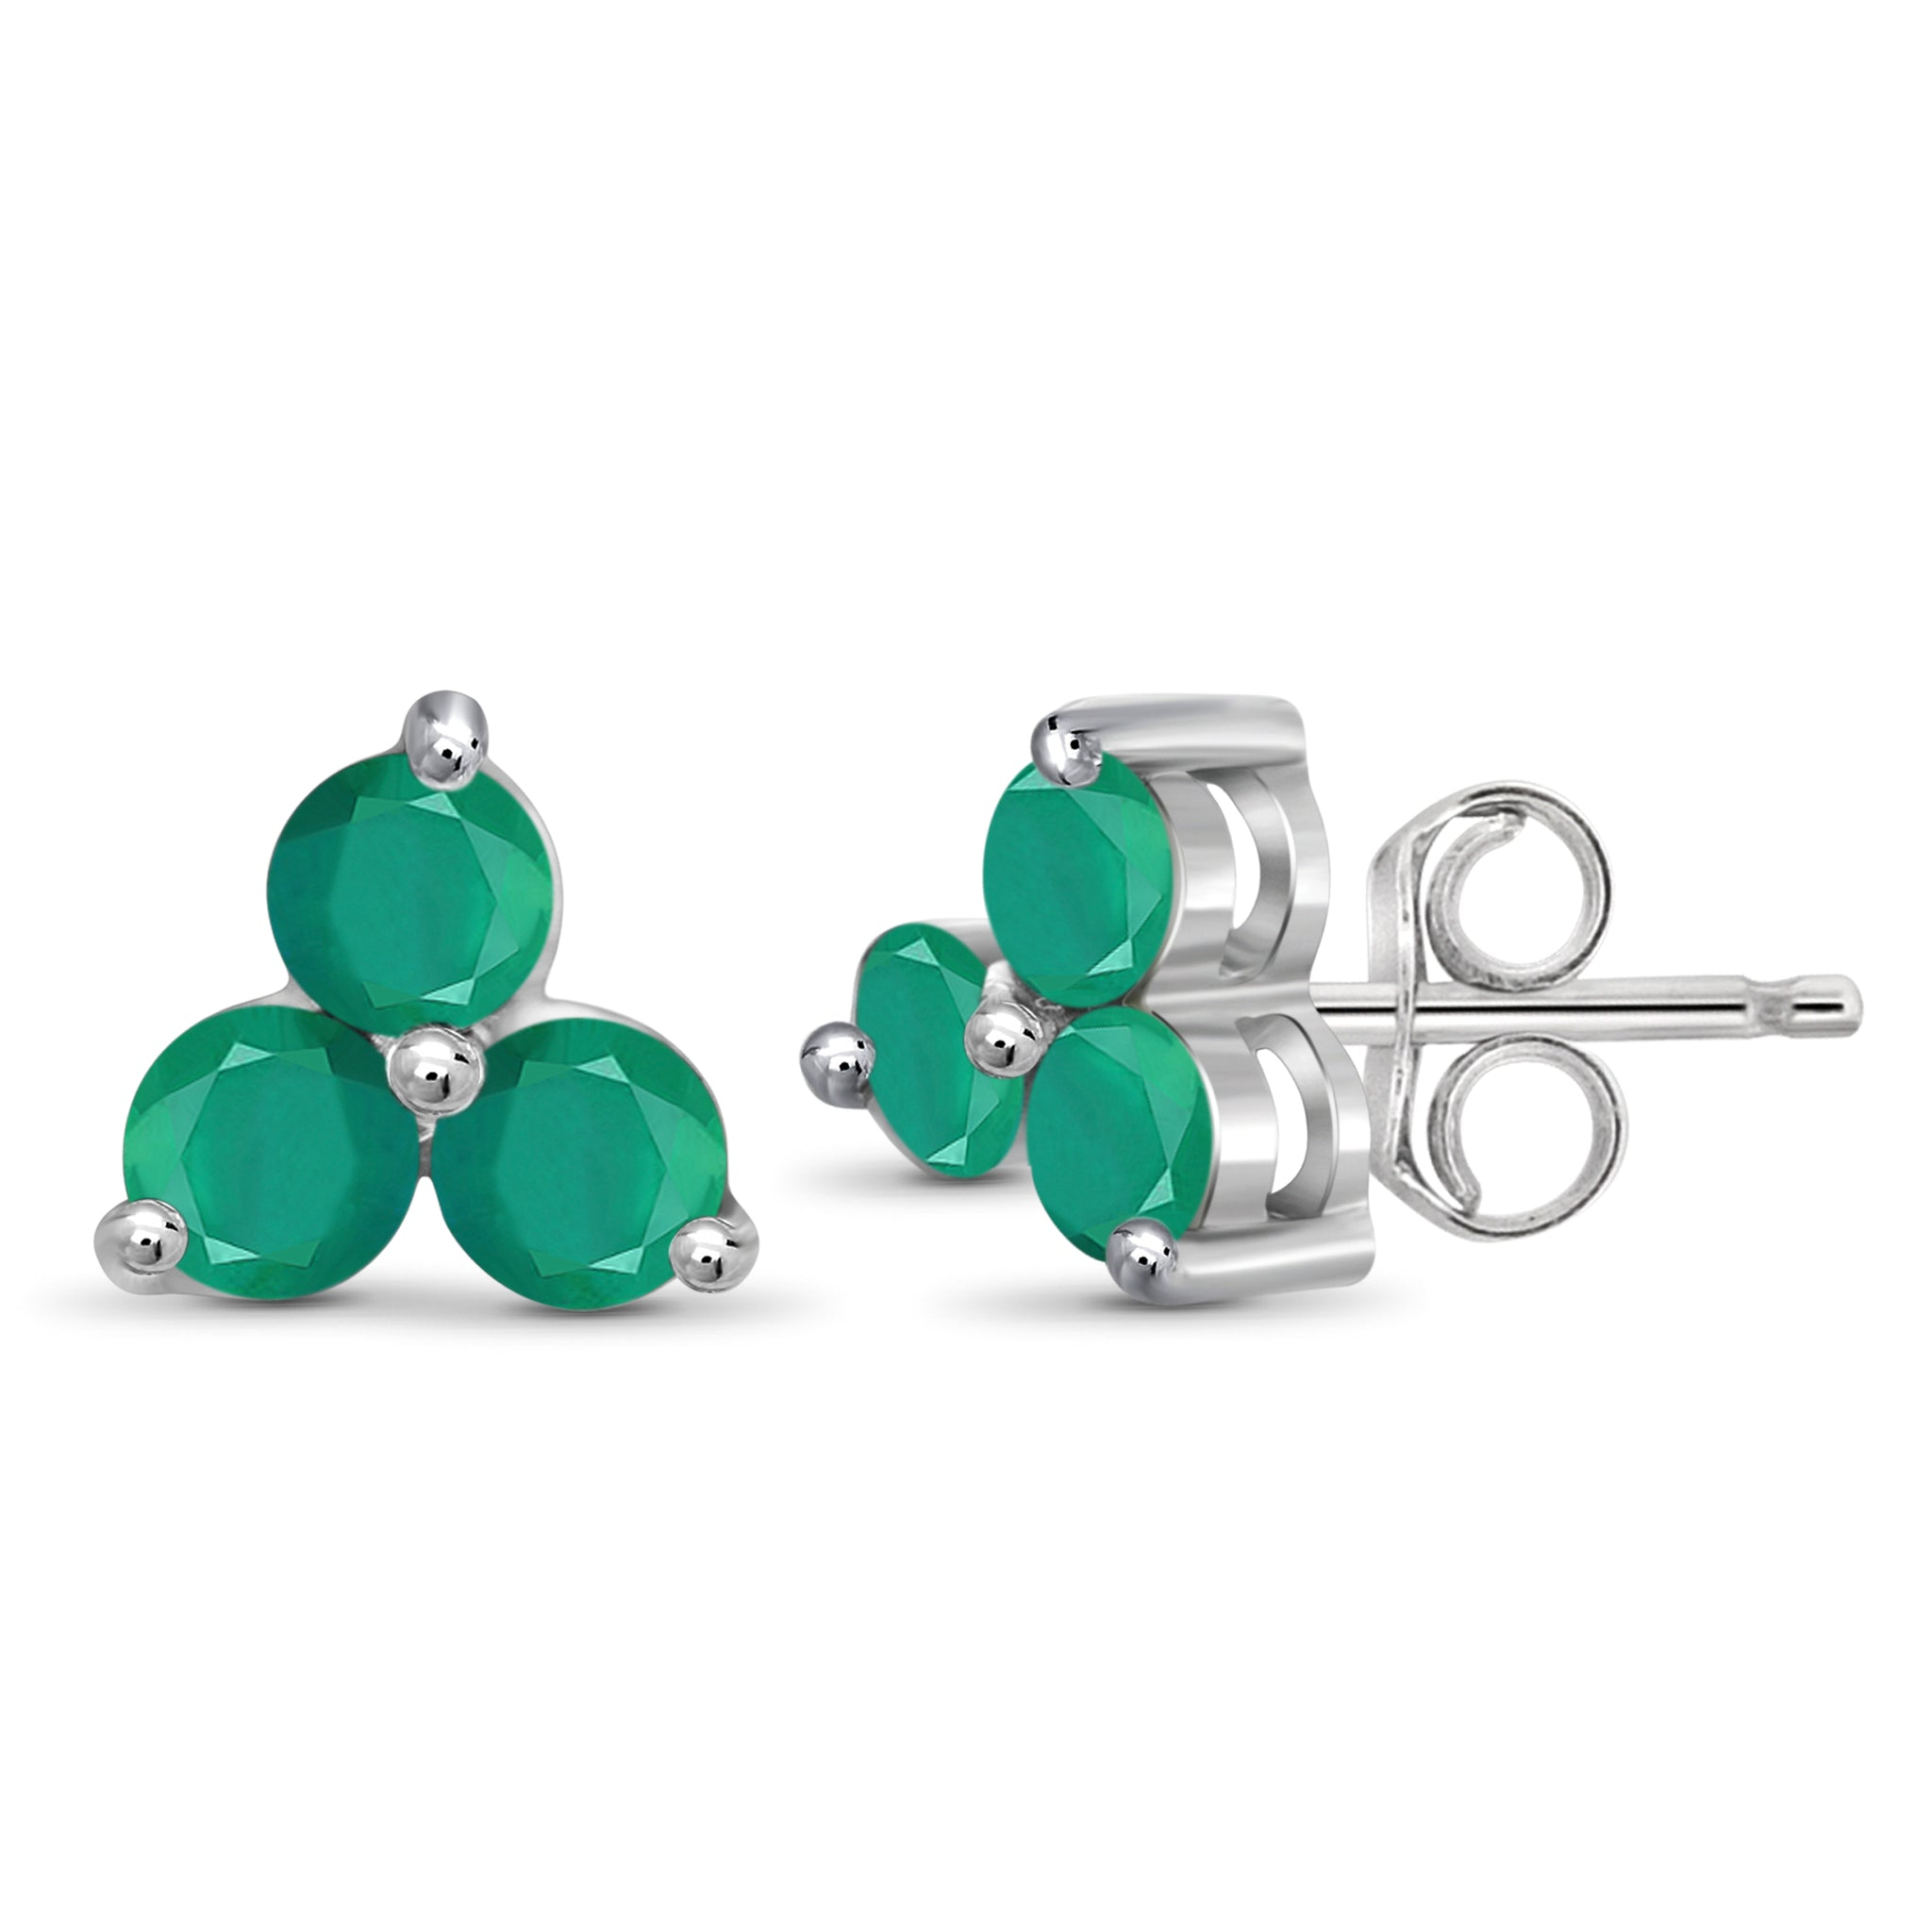 JewelonFire 1 3/4 Carat T.G.W. Emerald Sterling Silver Stud Earrings - Assorted Colors